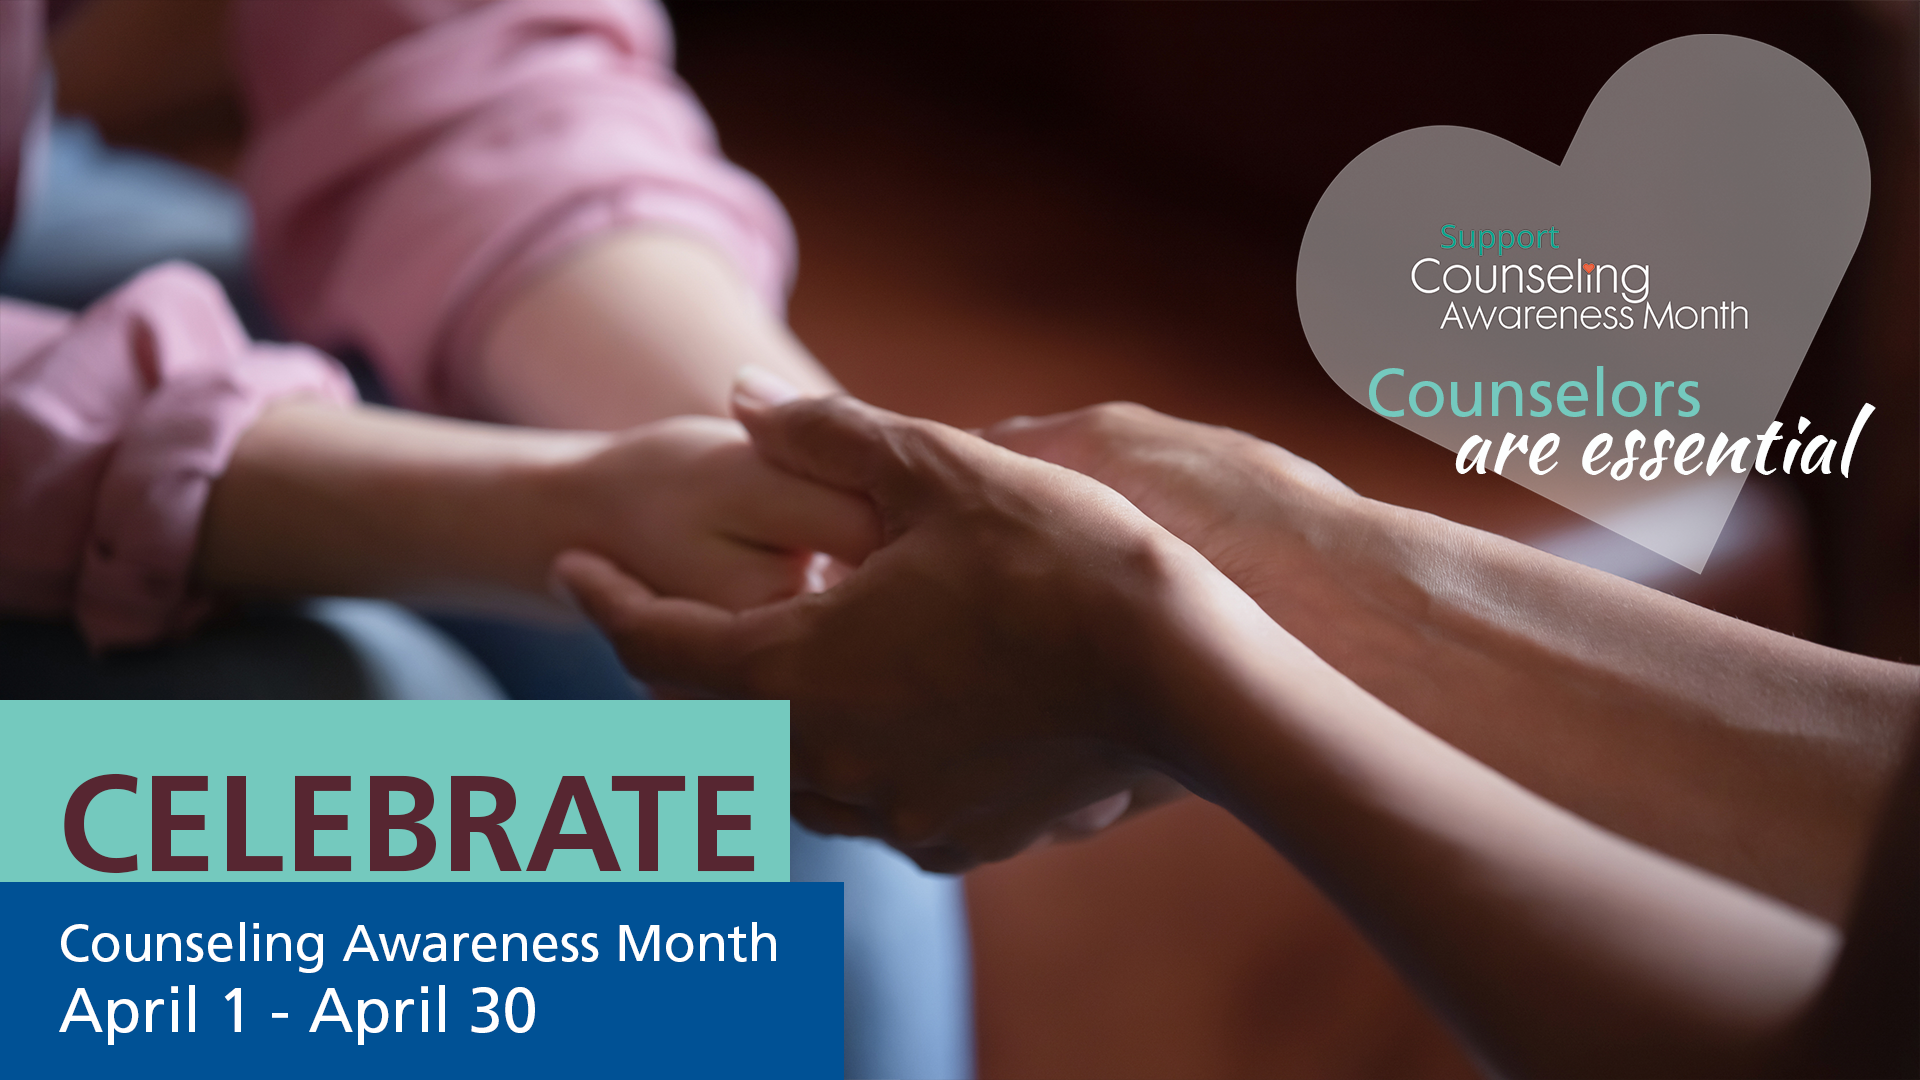 Announcement National Week Month counseling - We Love Our Bereavement Counselors. It's Counseling Awareness Month!